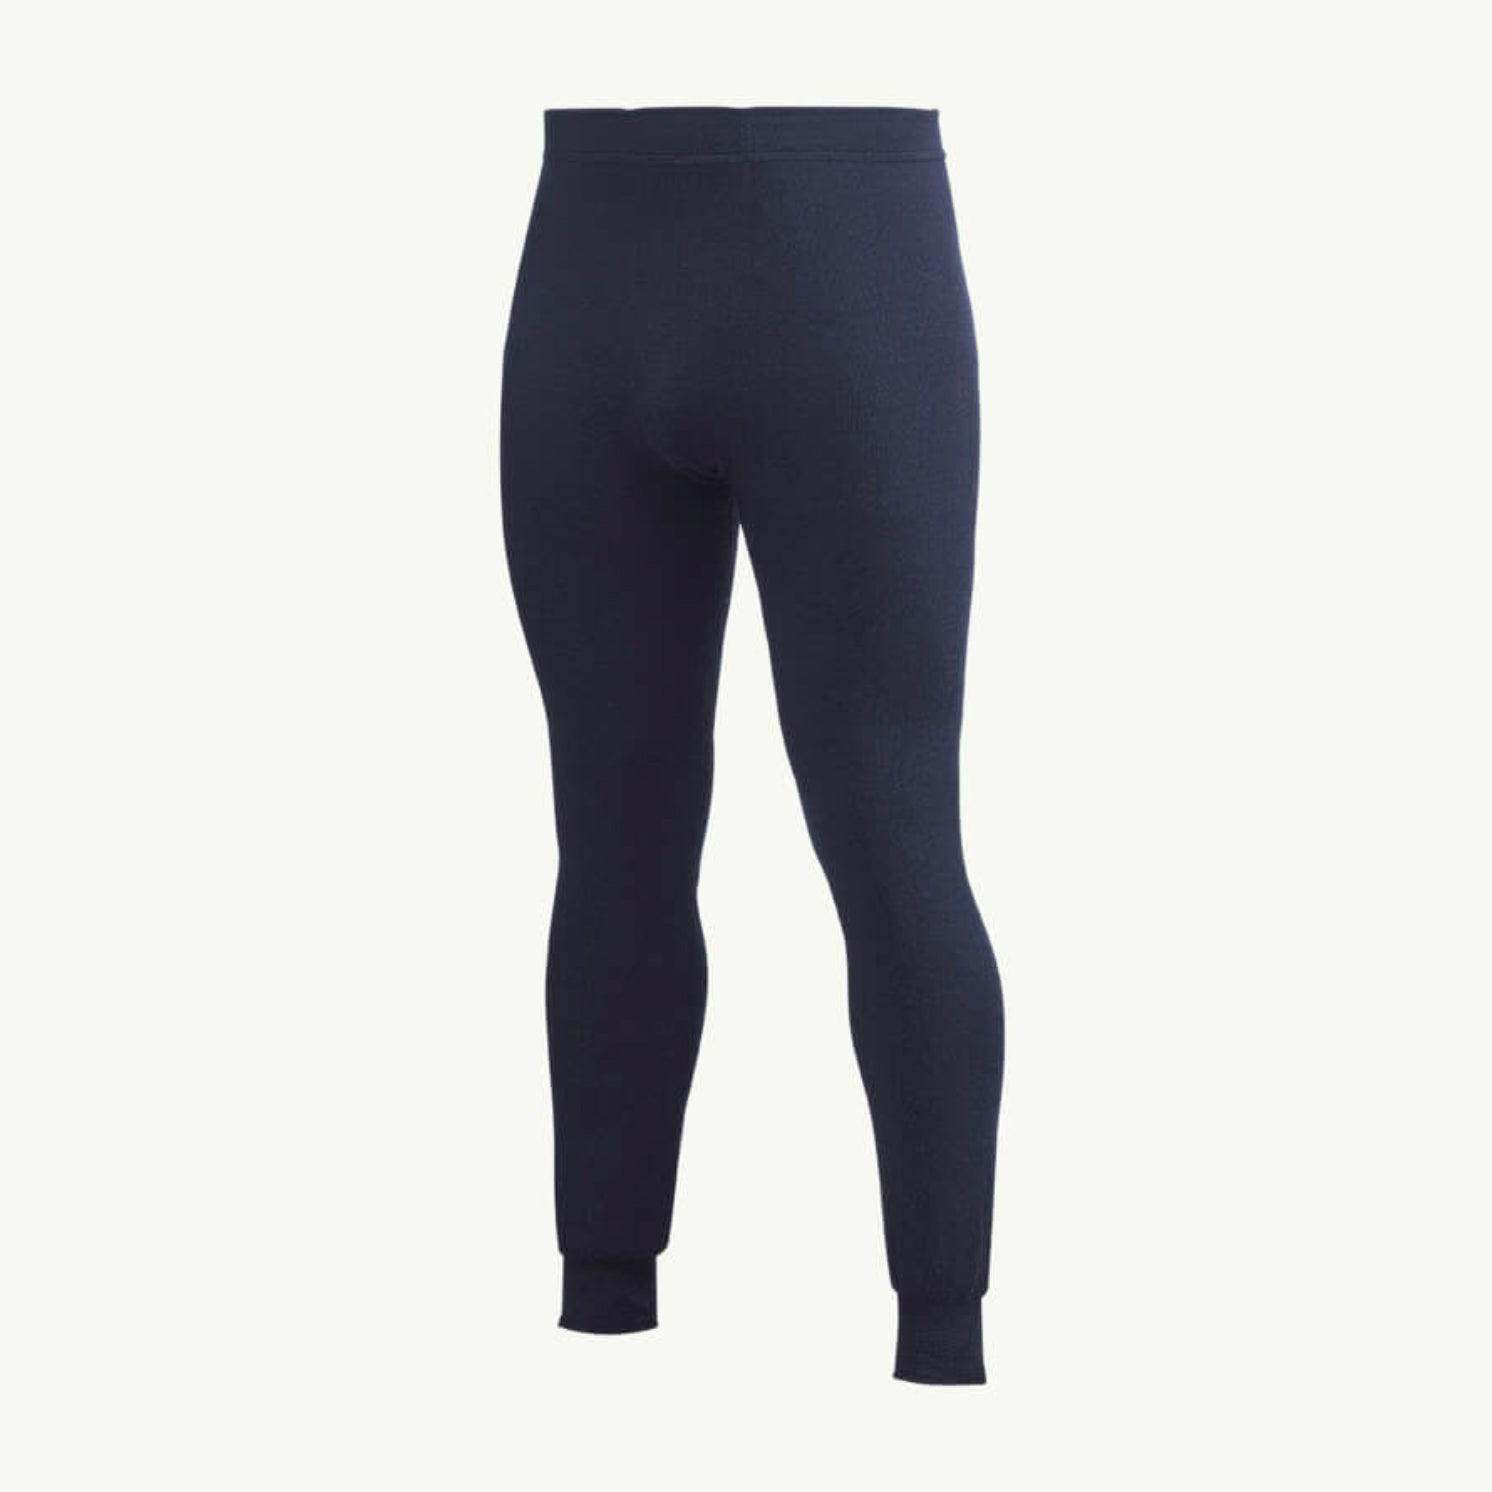 WOOLPOWER LONG JOHNS 200 – UNISEX – DARK NAVY